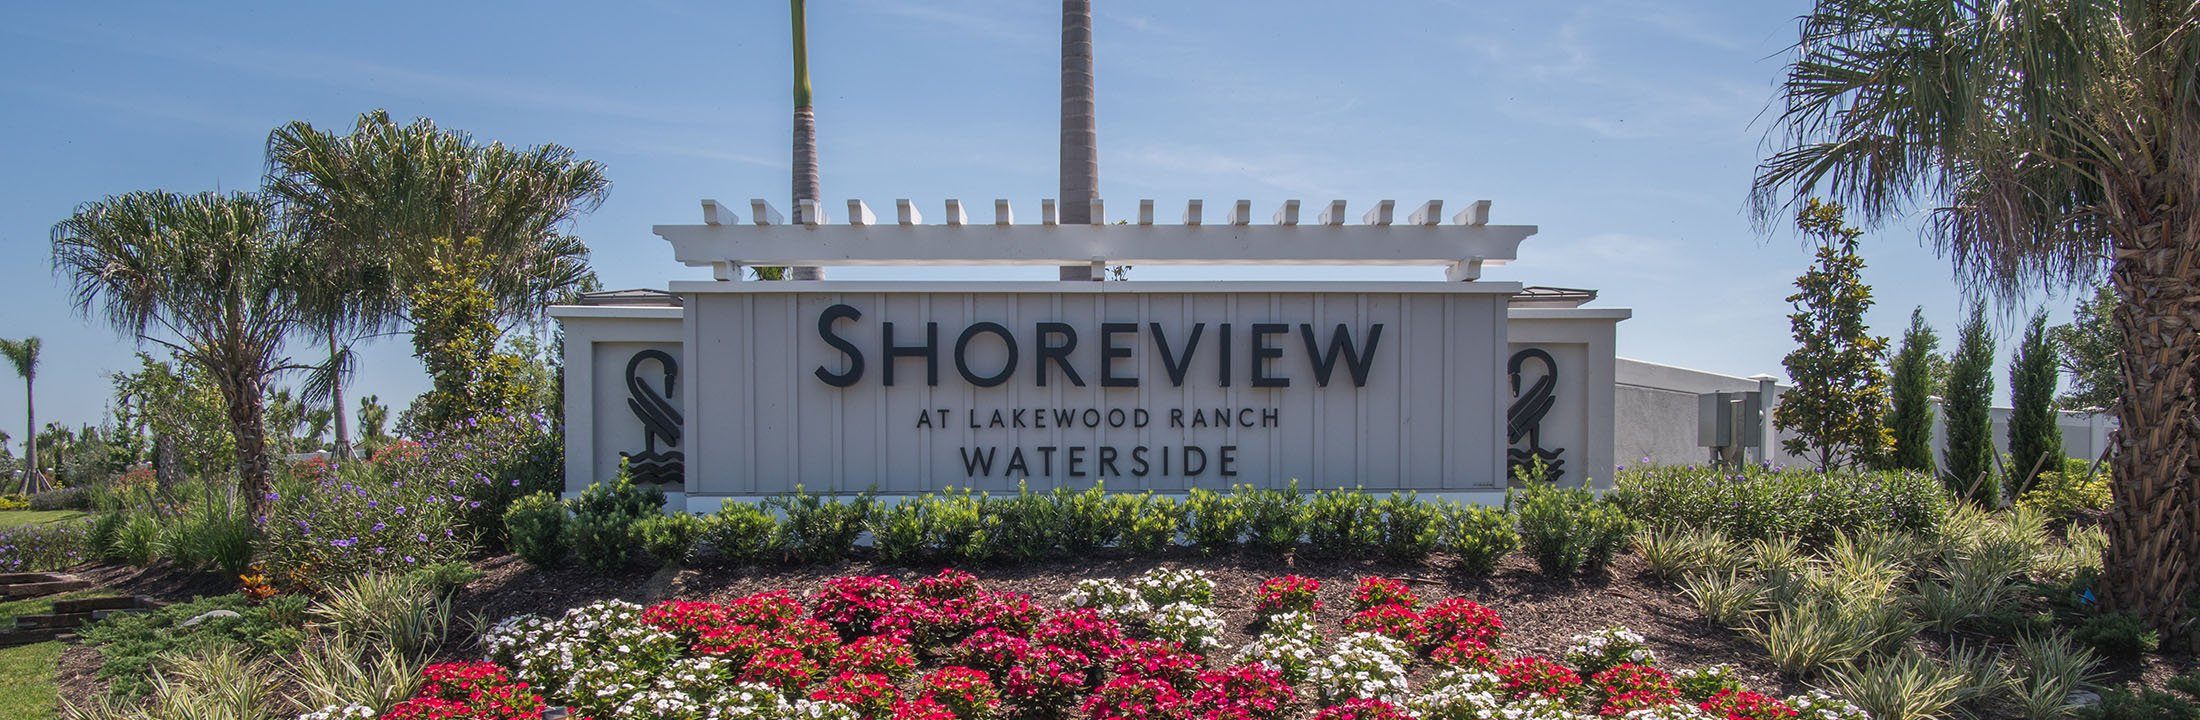 Shoreview homes for sale in Lakewood Ranch